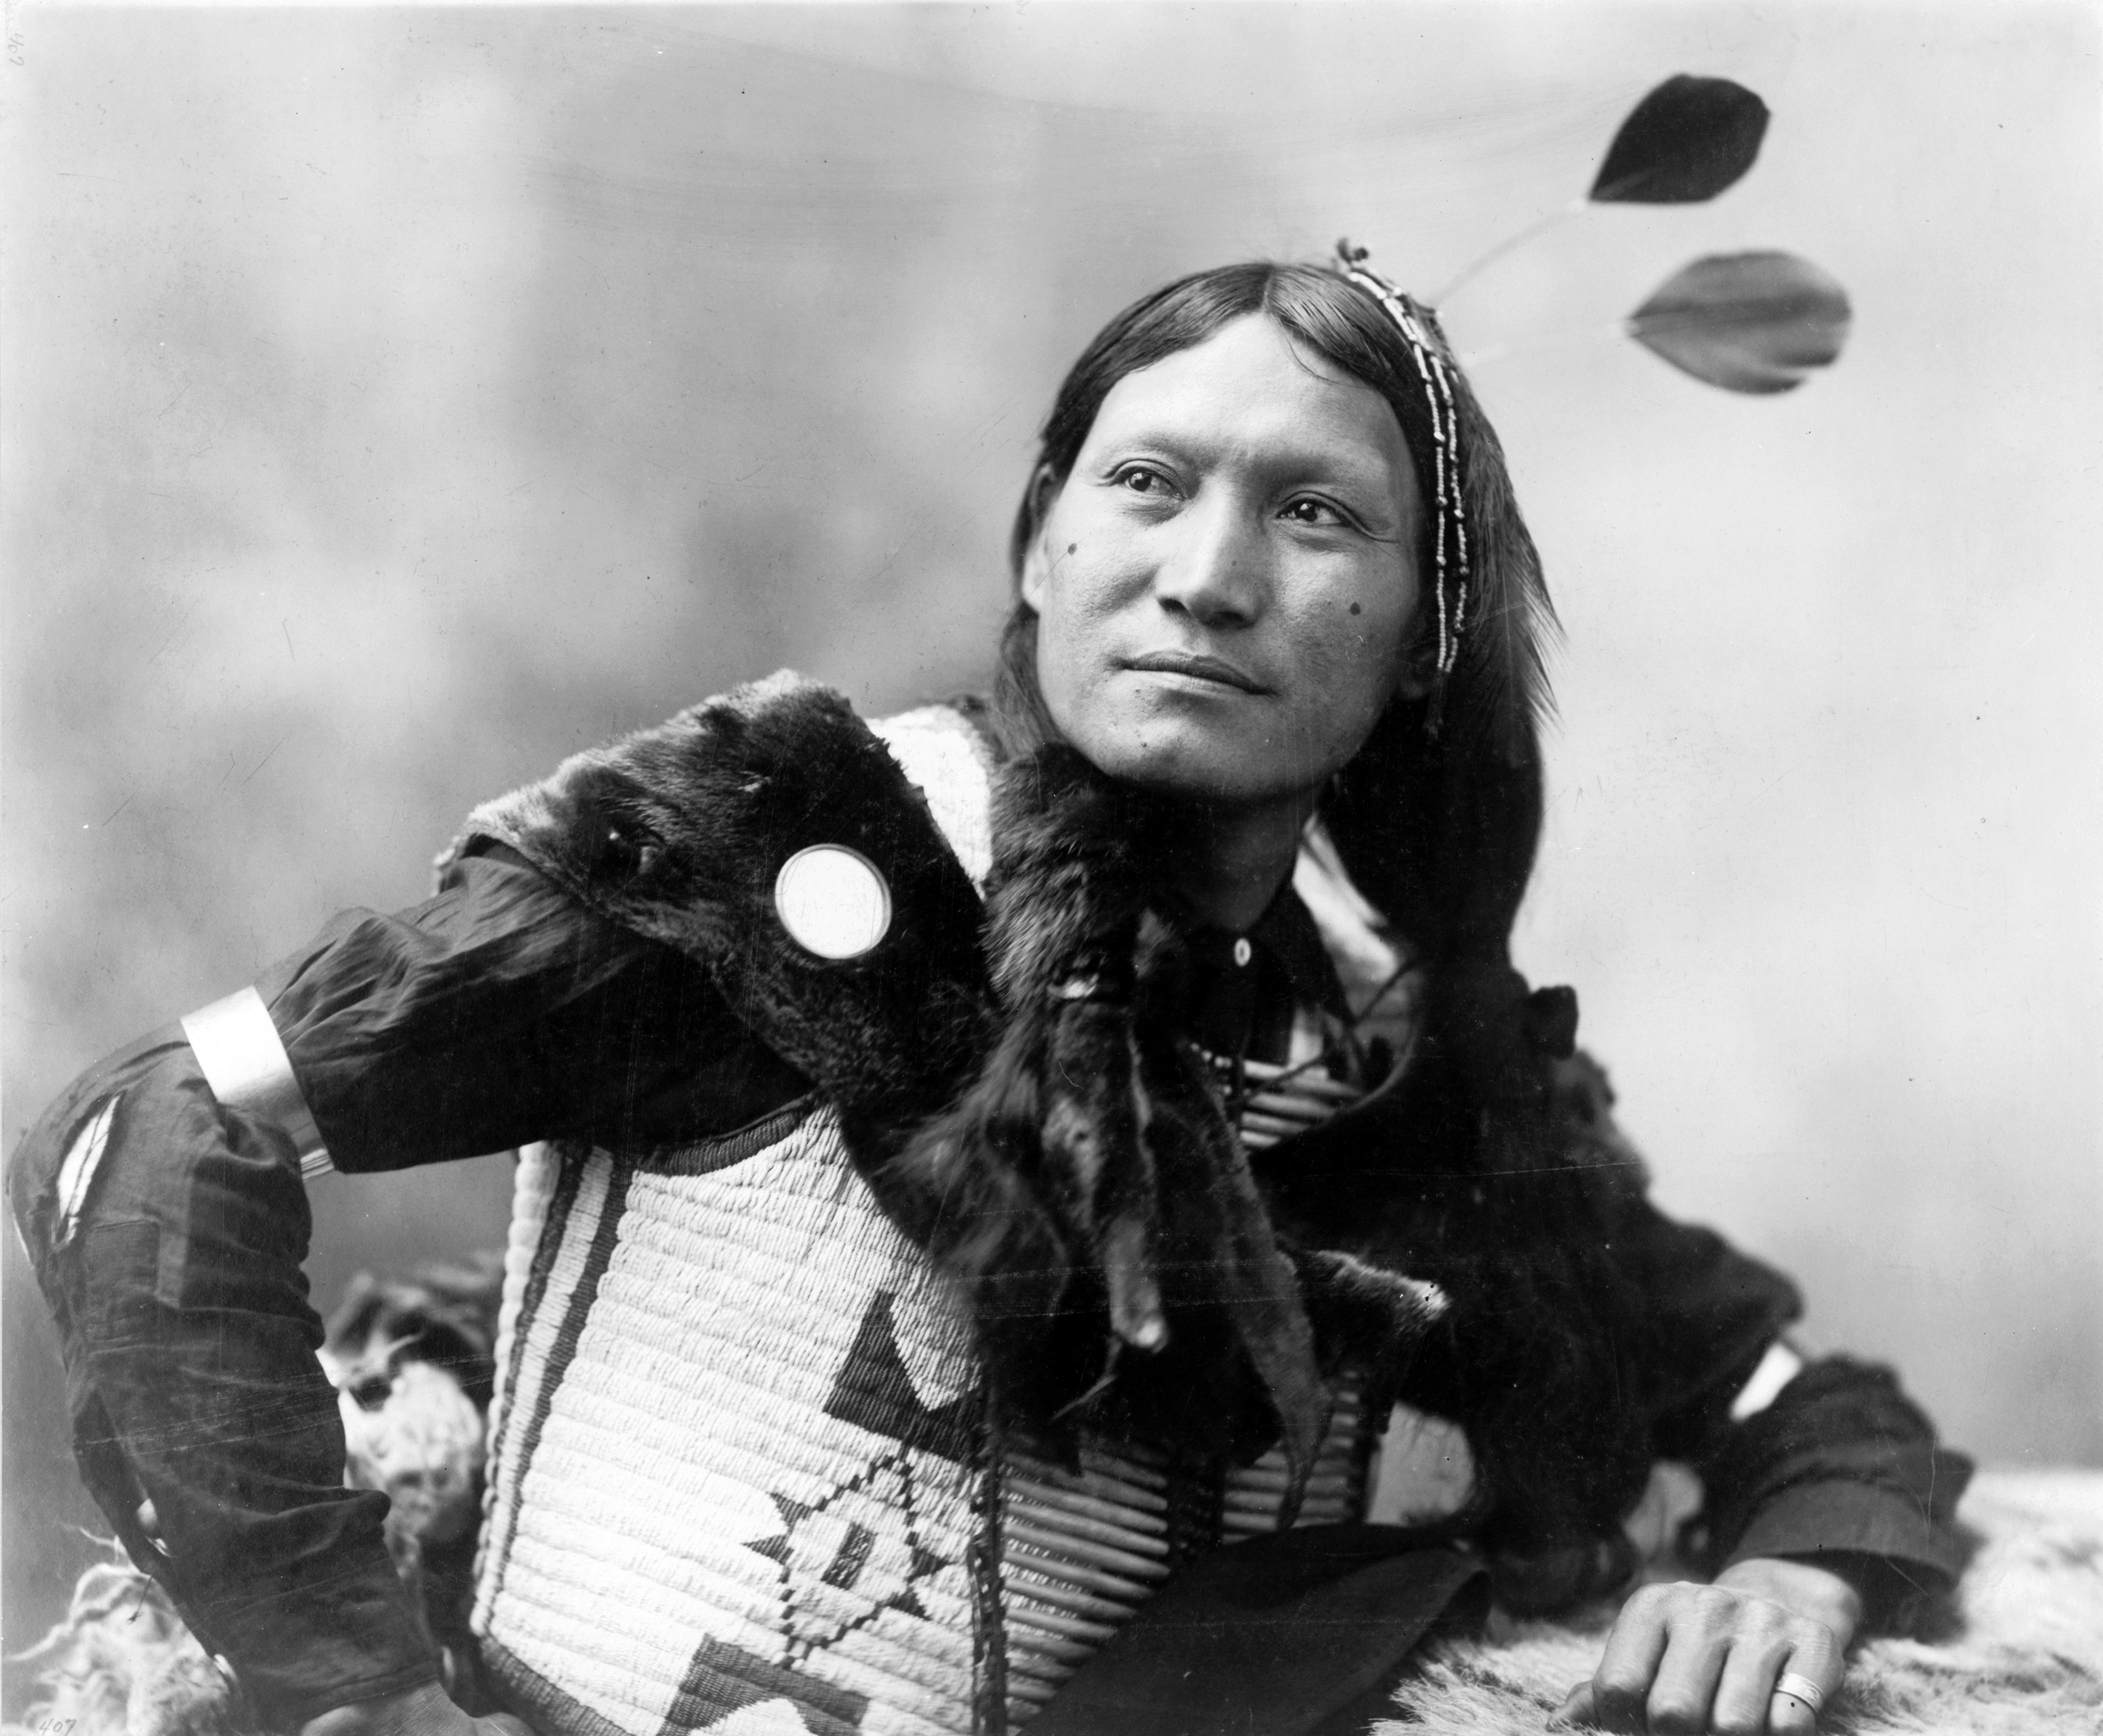 satanta single women Armed women on the frontier were not uncommon it was important to be able to  defend oneself and one's family and, if necessary, to signal for.